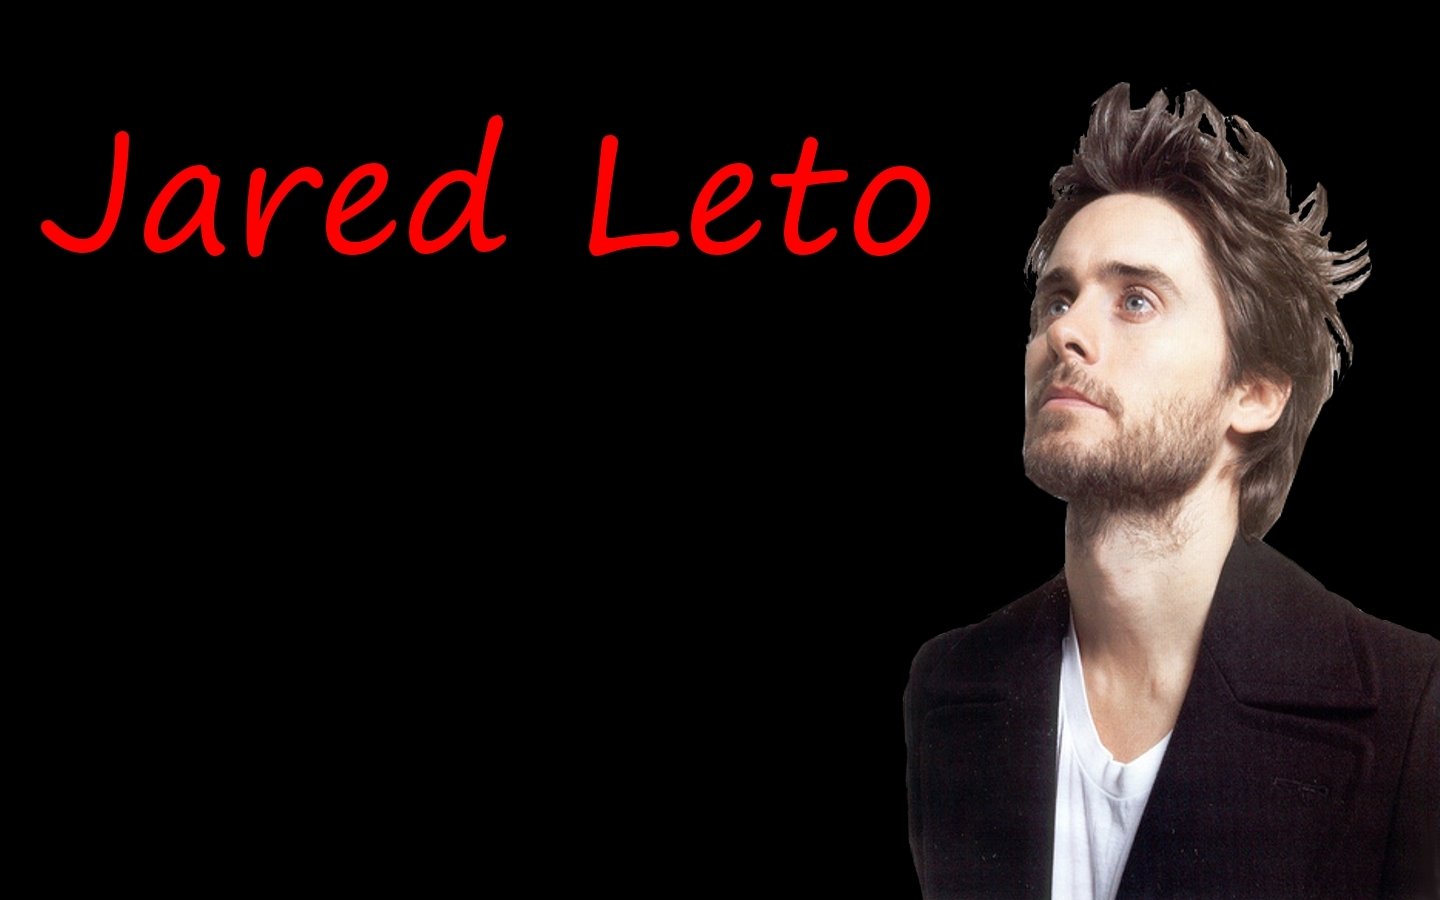 http://3.bp.blogspot.com/-gXu70Ire8uk/ToBaFsF17BI/AAAAAAAAD7s/u-AQU2P0UFw/s1600/Jared-Leto-Wallpaper-30-seconds-to-mars-1440x900.jpg